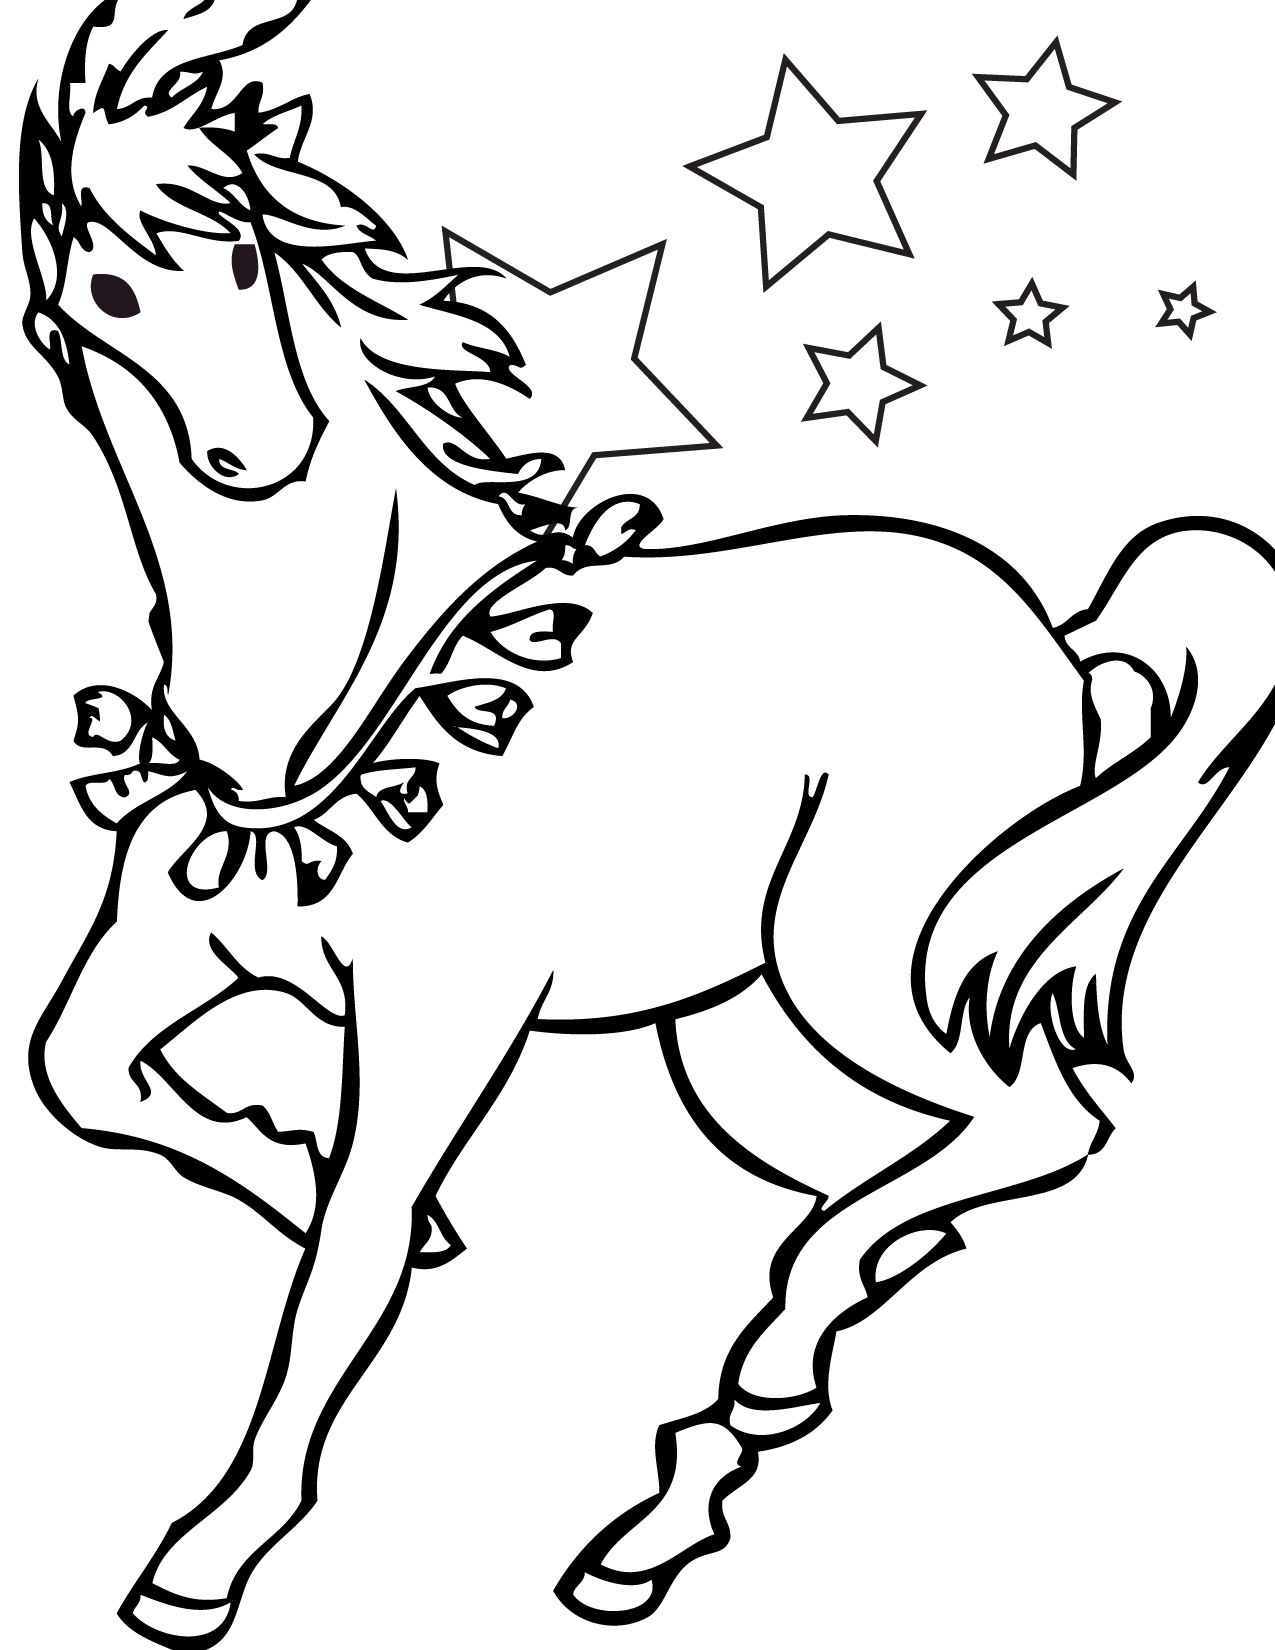 coloring horse clipart walking horse outline 1 coloring book colouring svg coloring horse clipart